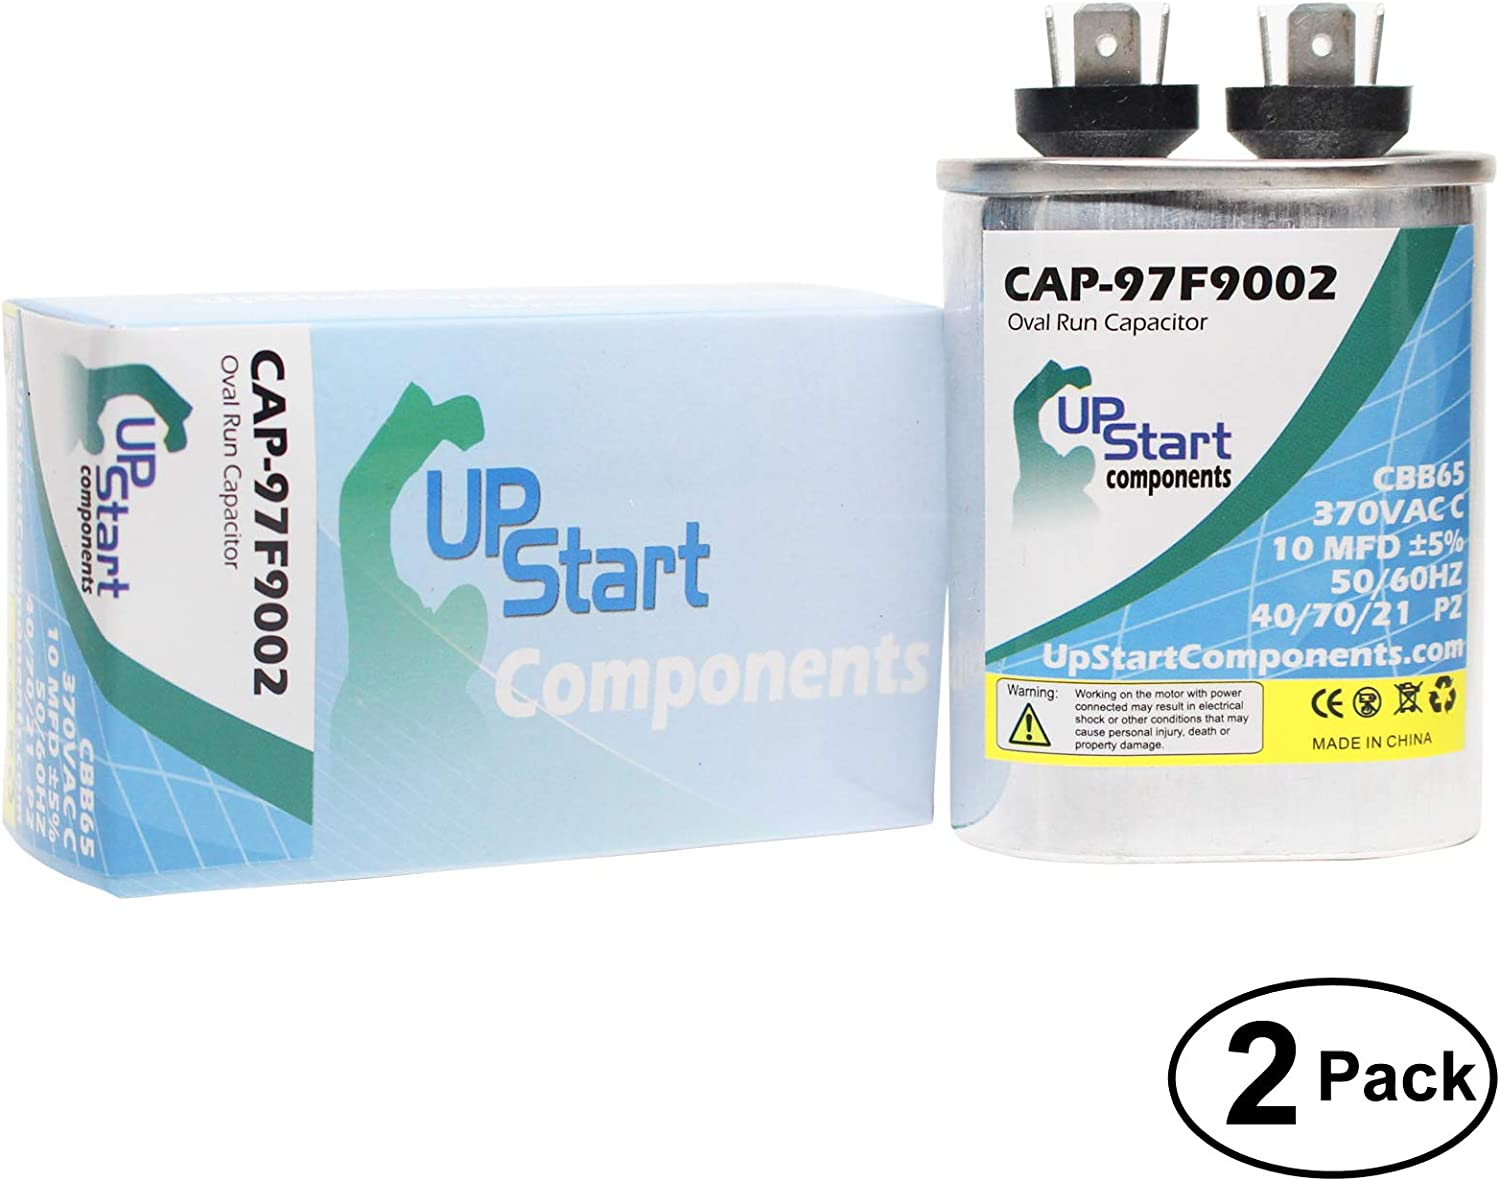 2-Pack 10 MFD 370 Volt Oval Run Capacitor Replacement for Carrier/Bryant/Payne 558FTX300000AA - CAP-97F9002, UpStart Components Brand